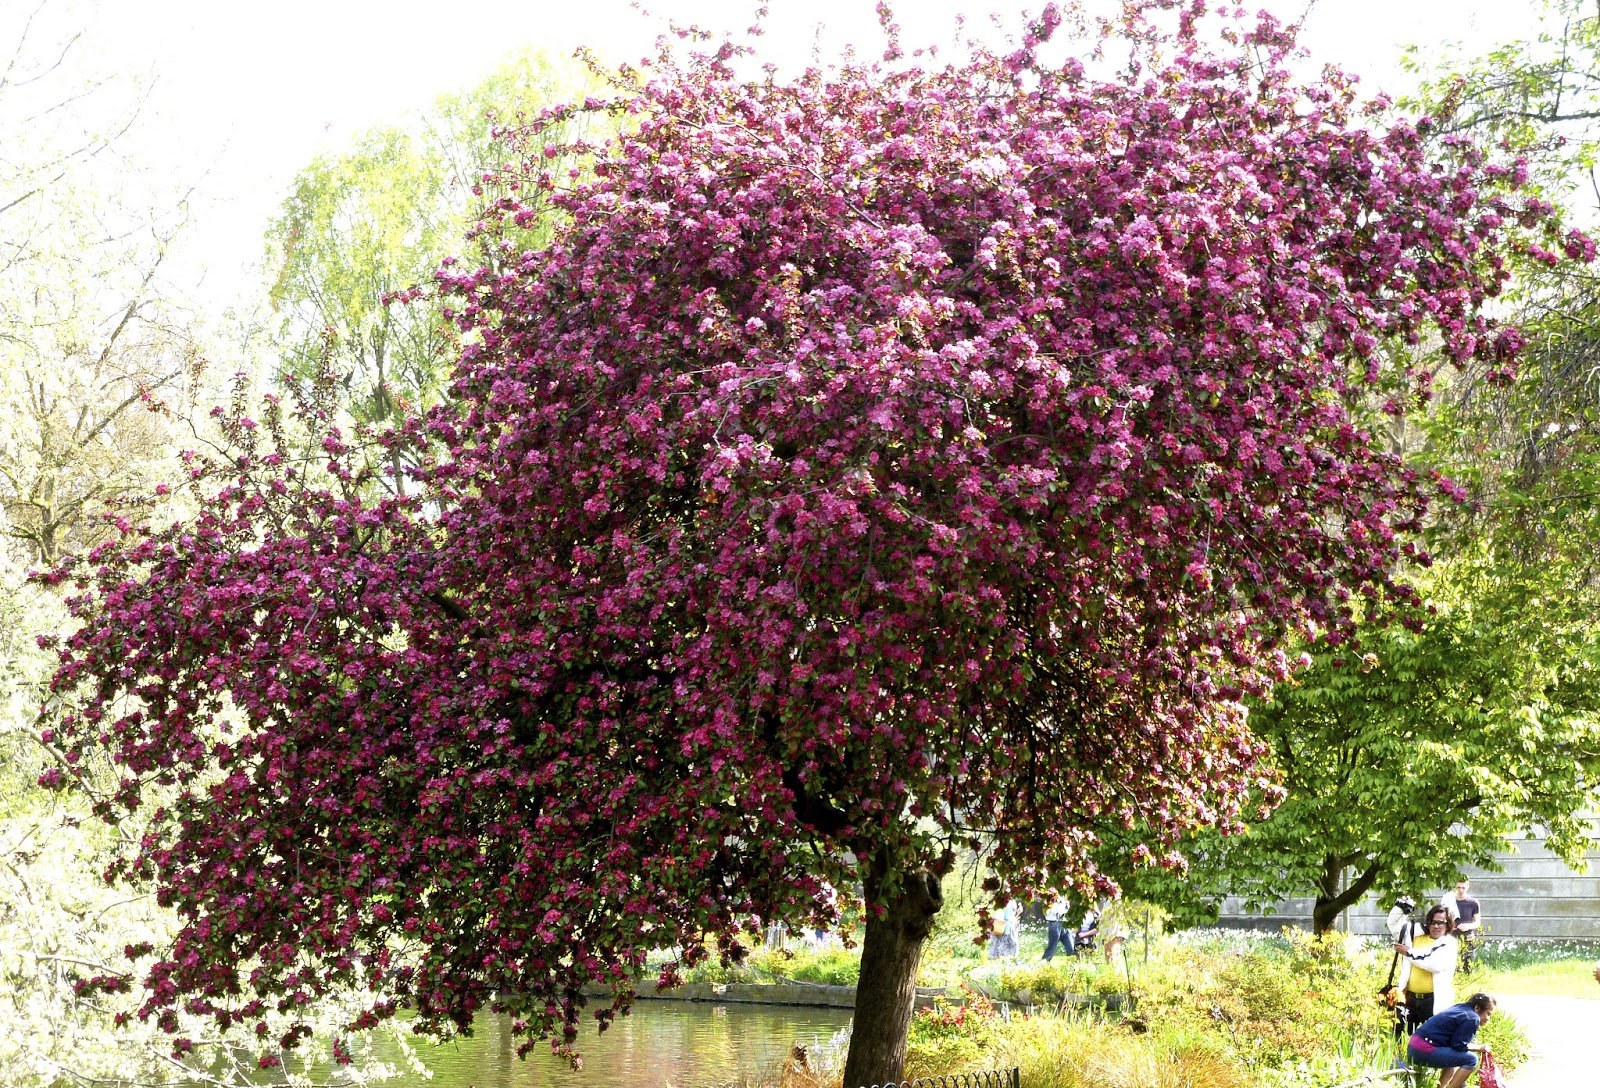 Picture of deep pink blossom tree, St James' Park